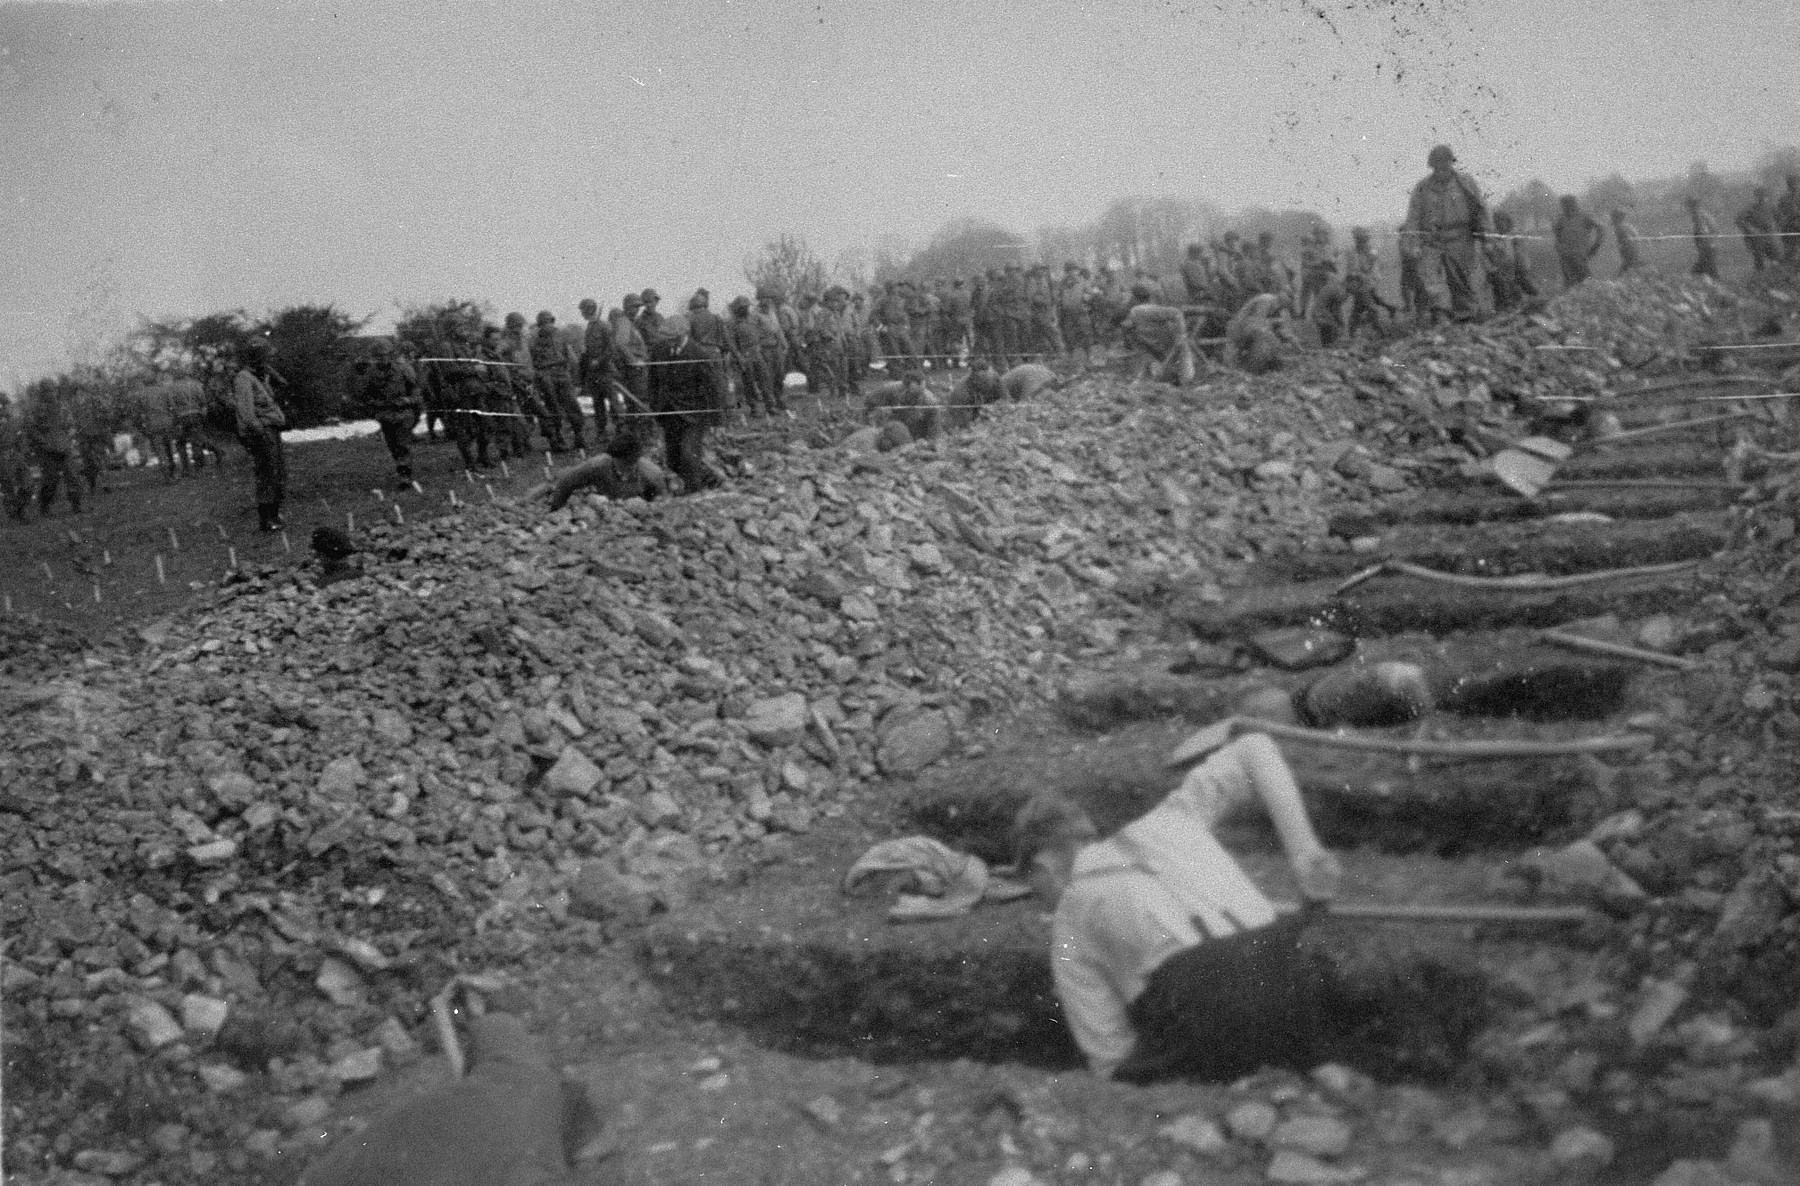 German civilians conscripted from nearby towns dig graves for prisoners killed in Ohrdruf as American soldiers look on.